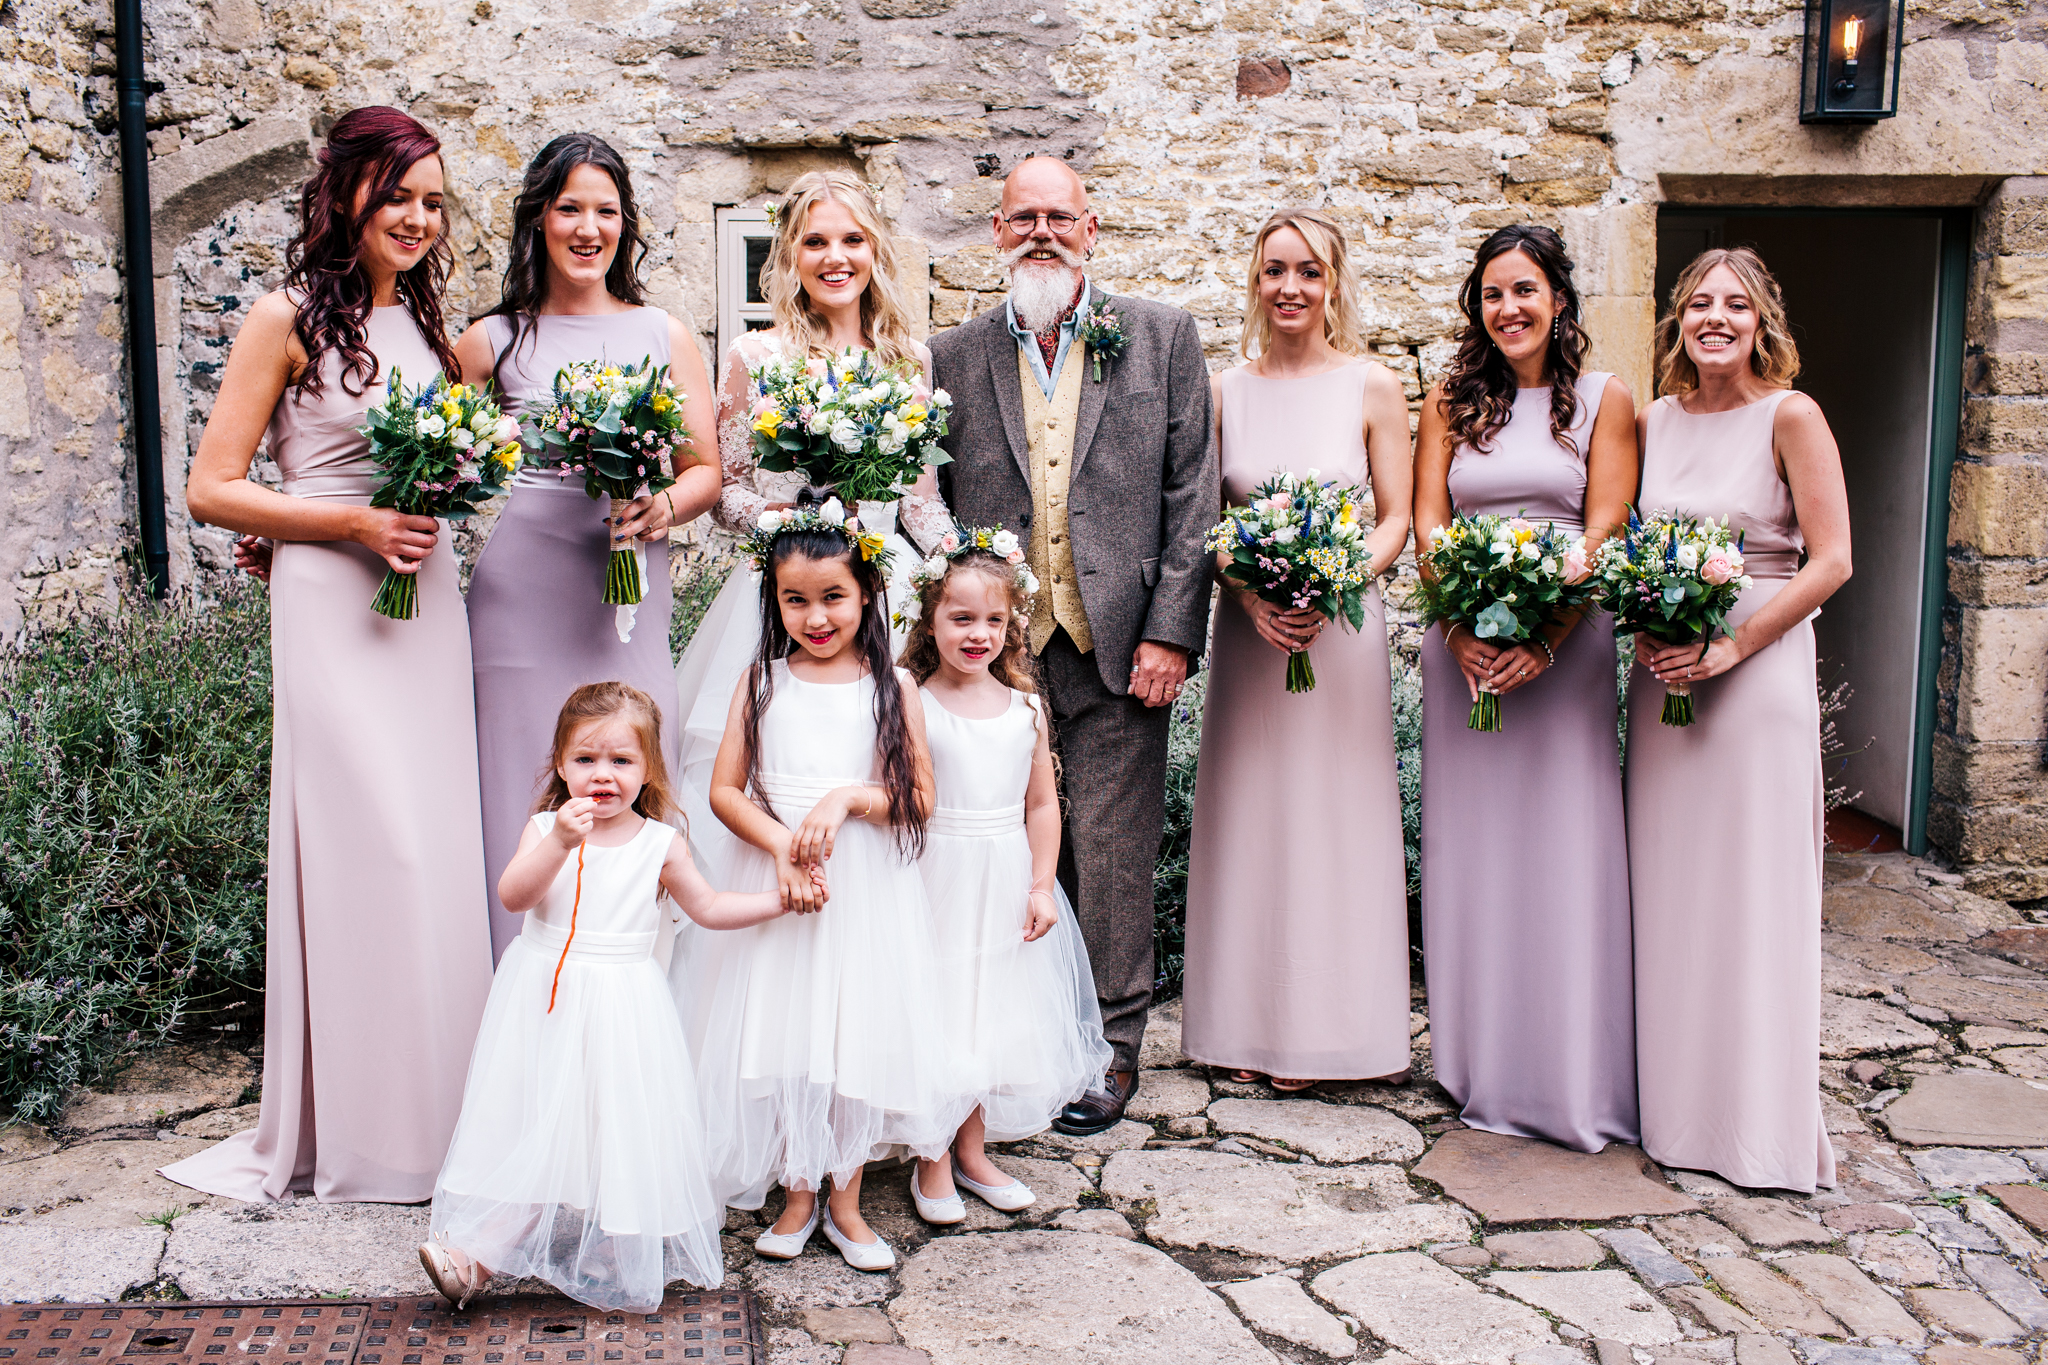 Group shot of bride and bridesmaid before the wedding at Mells Walled Garden